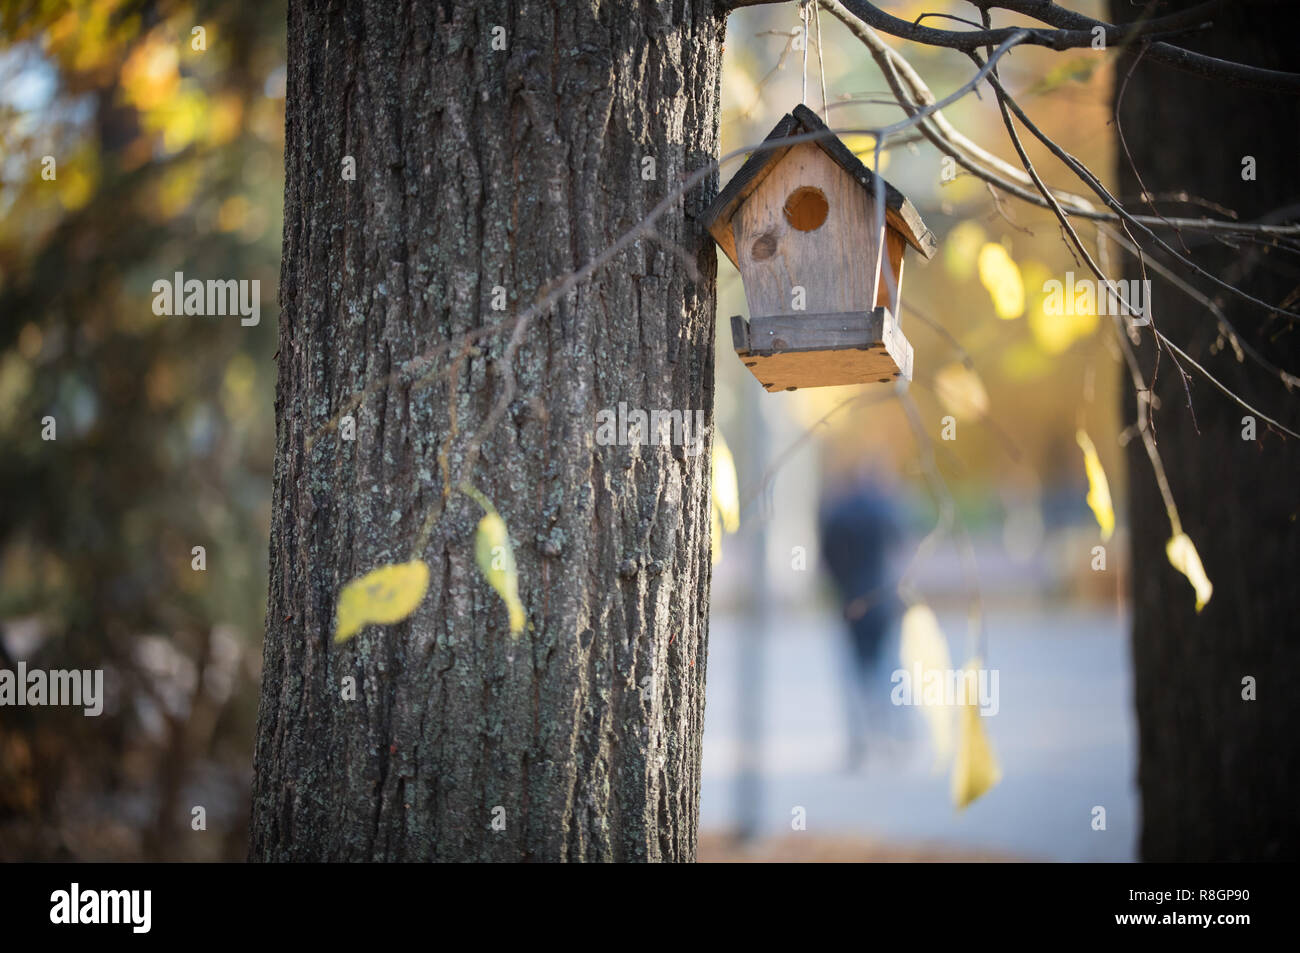 Birdhouse Hanging On A Tree In The Autumn Park